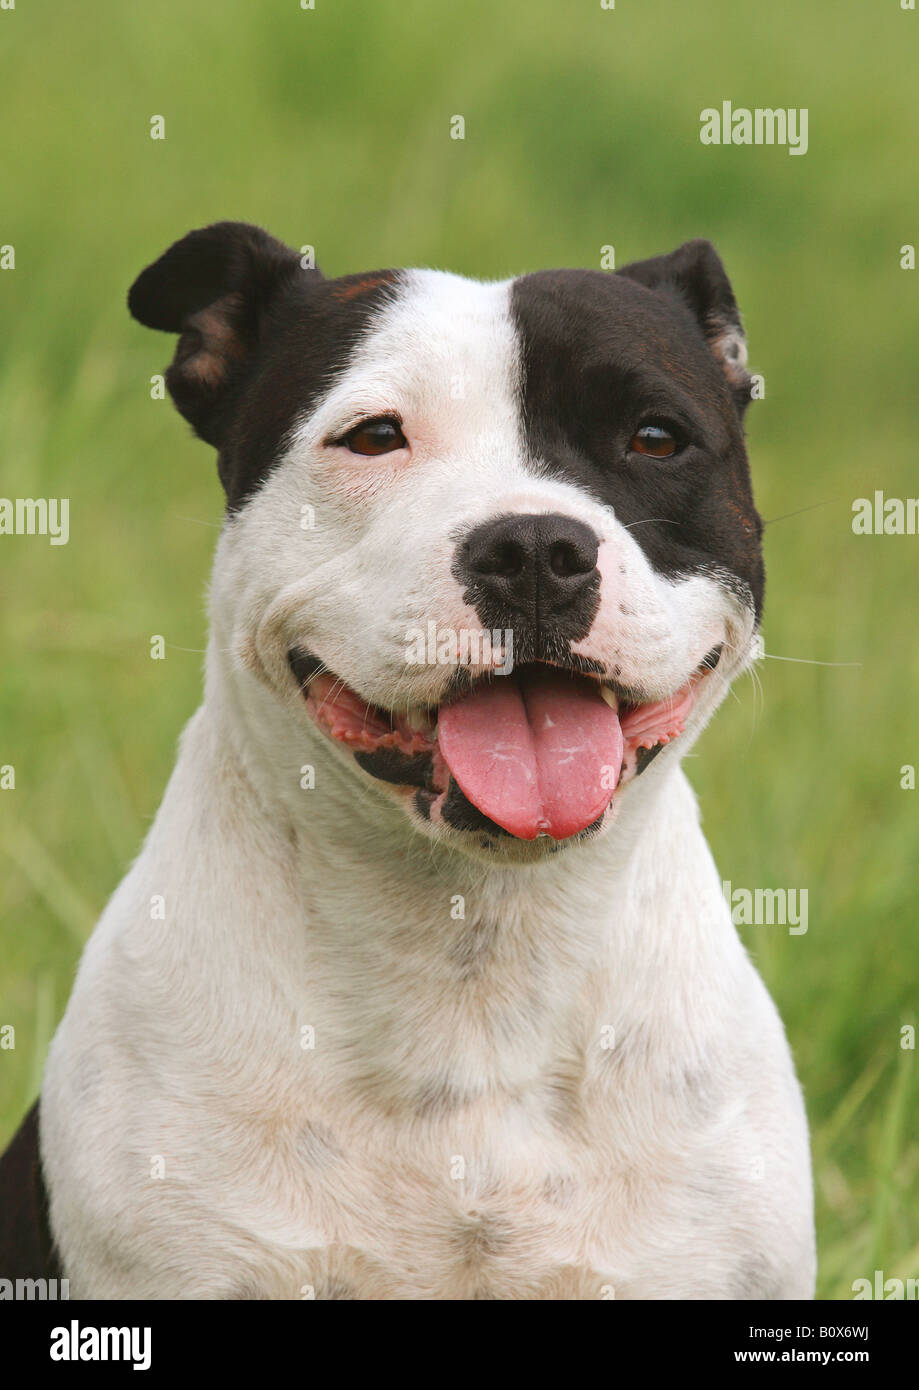 staffordshire bullterrier - portrait - Stock Image